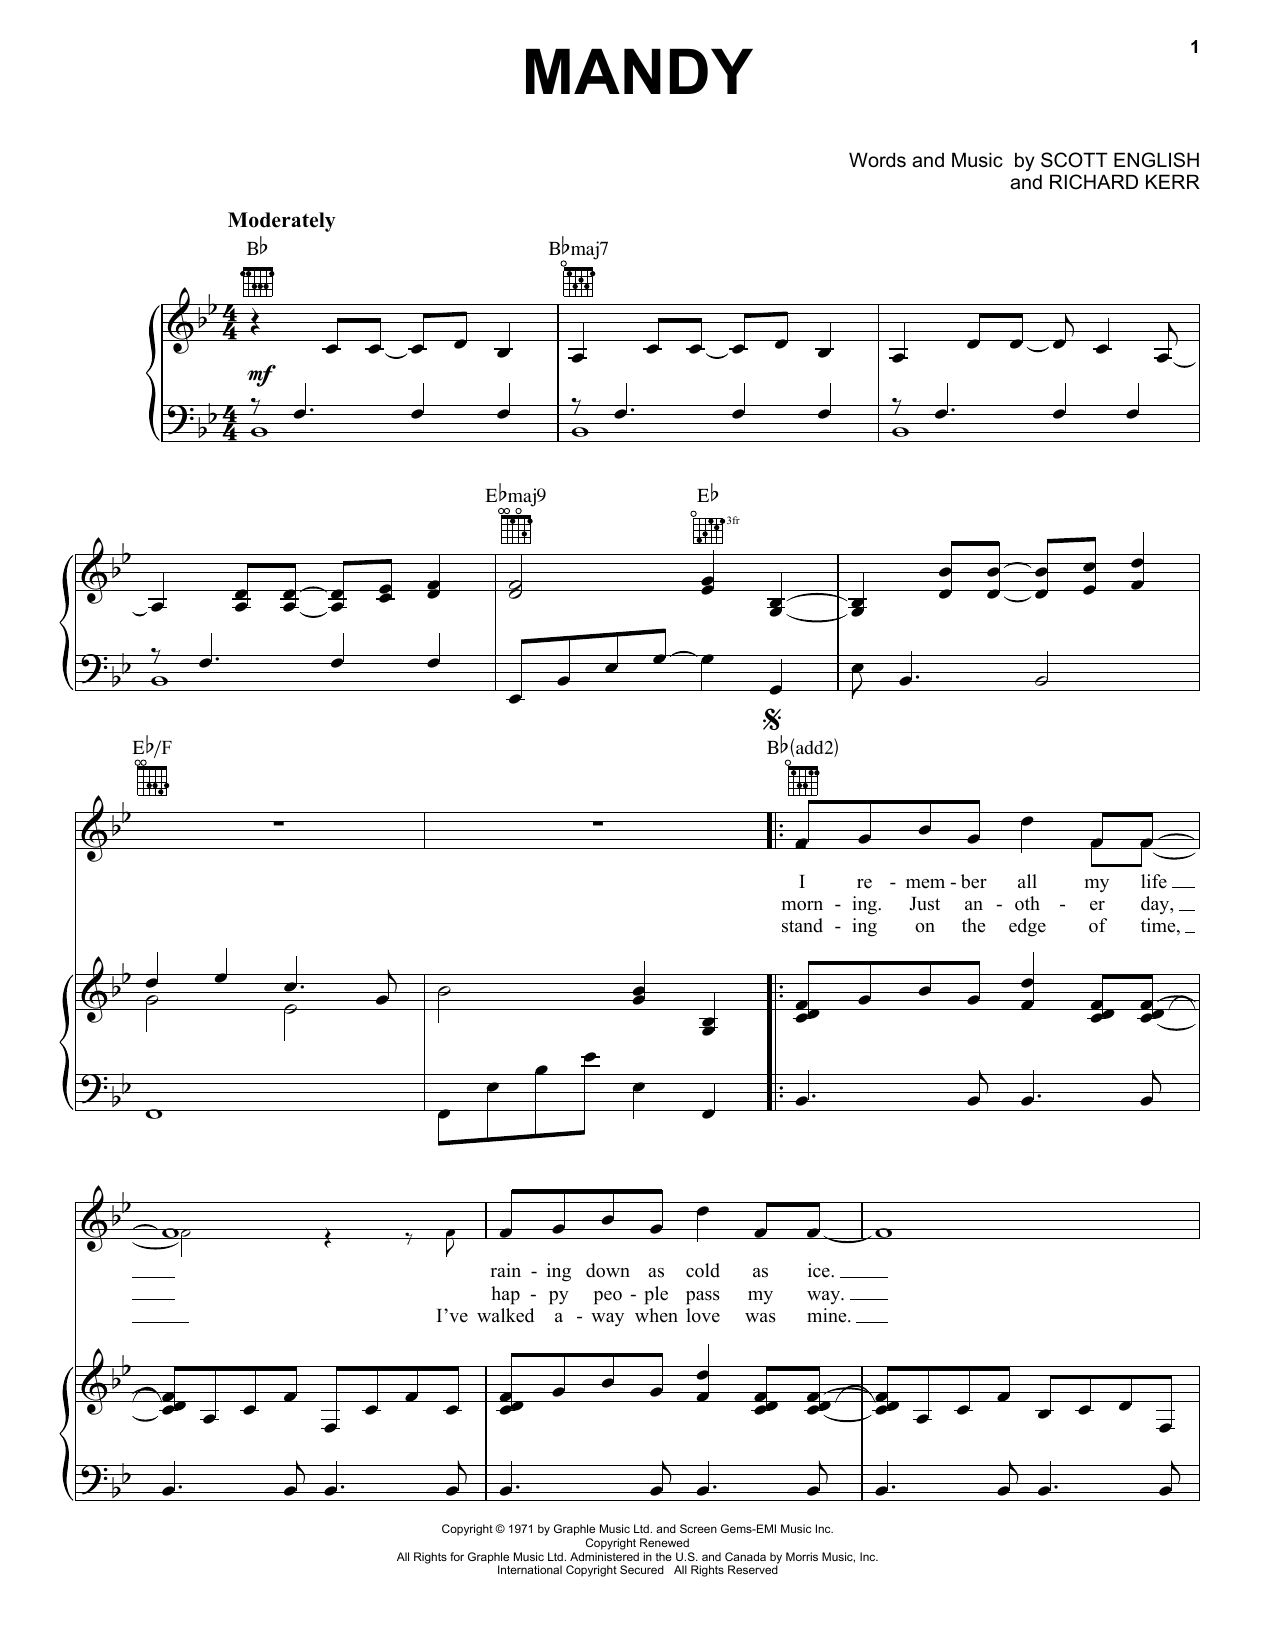 Barry Manilow Mandy sheet music notes and chords. Download Printable PDF.